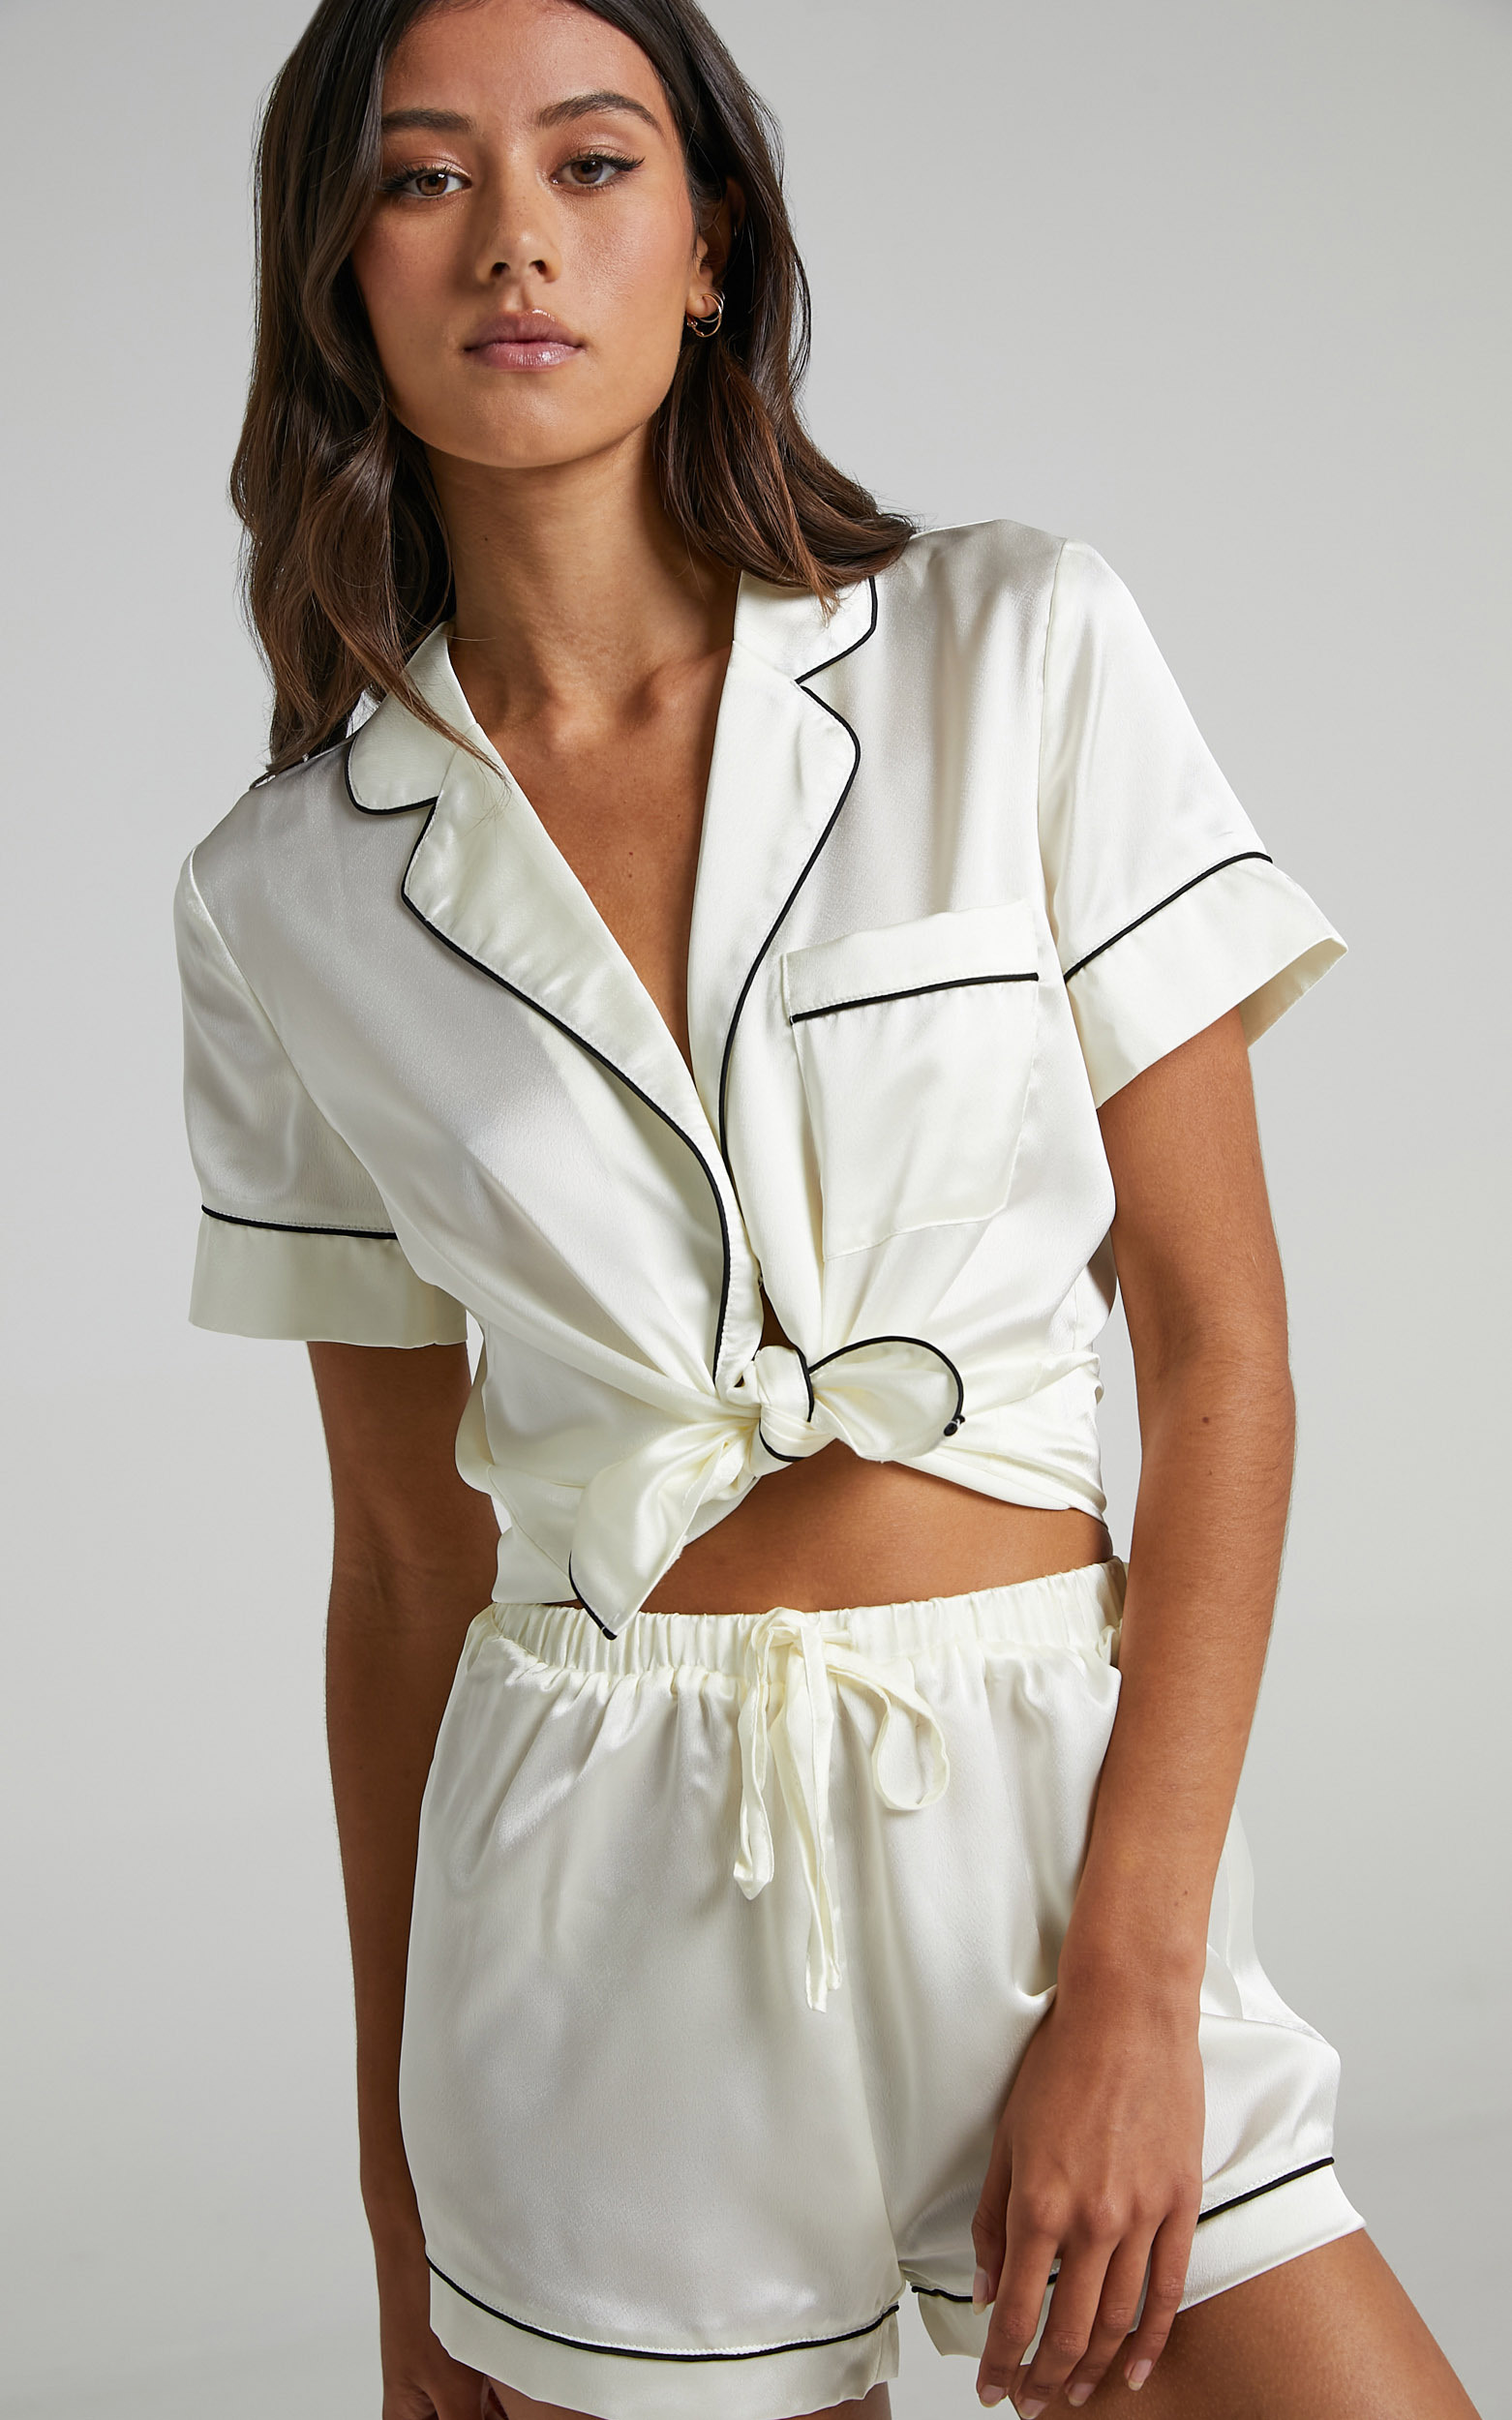 Sleep All Day Shorts in Ivory Satin - 06, WHT4, hi-res image number null